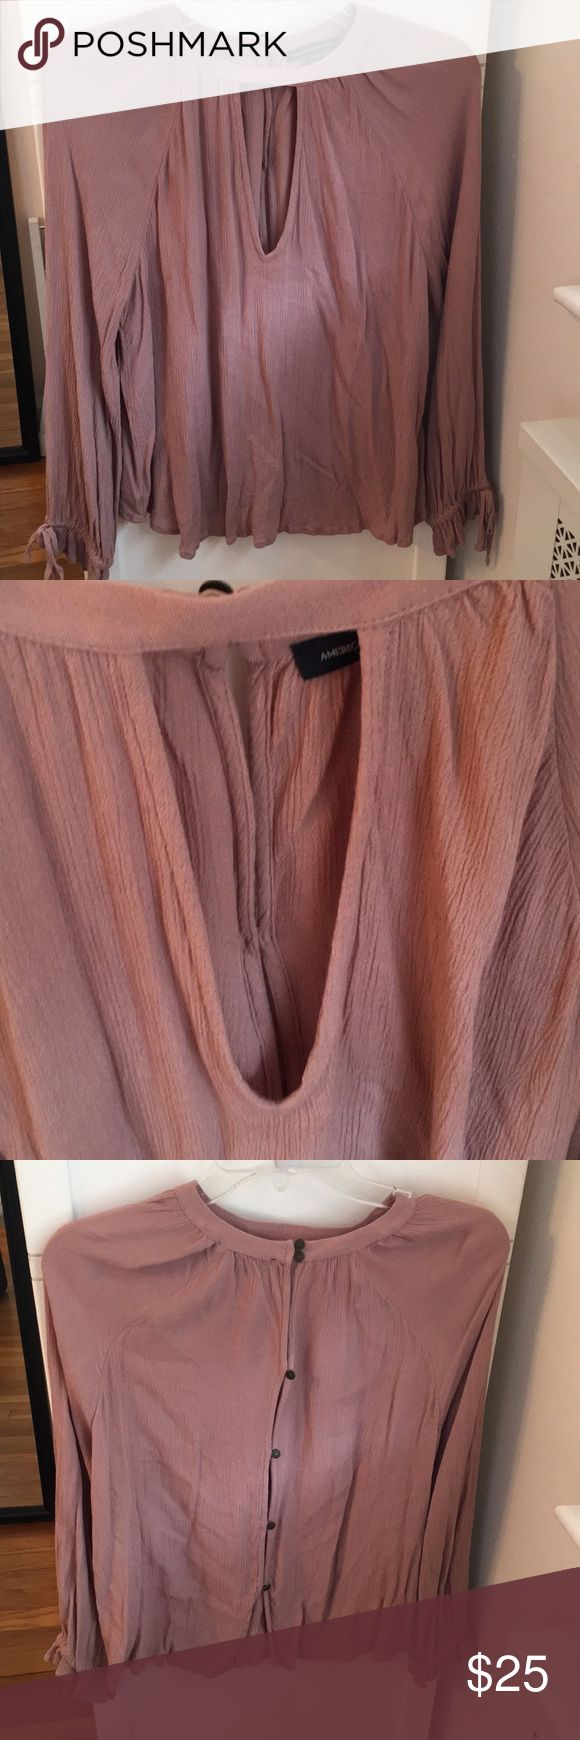 American Eagle flowy shirt Dusty rose color with tight ends for the sleeves all buttons on the back makes it super flowy and light weight worn twice with a key hole neck line detail in the front. Small Pettit but I'm 5'6 and it fit me perfect. Lays right on top of the jeans. American Eagle Outfitters Tops